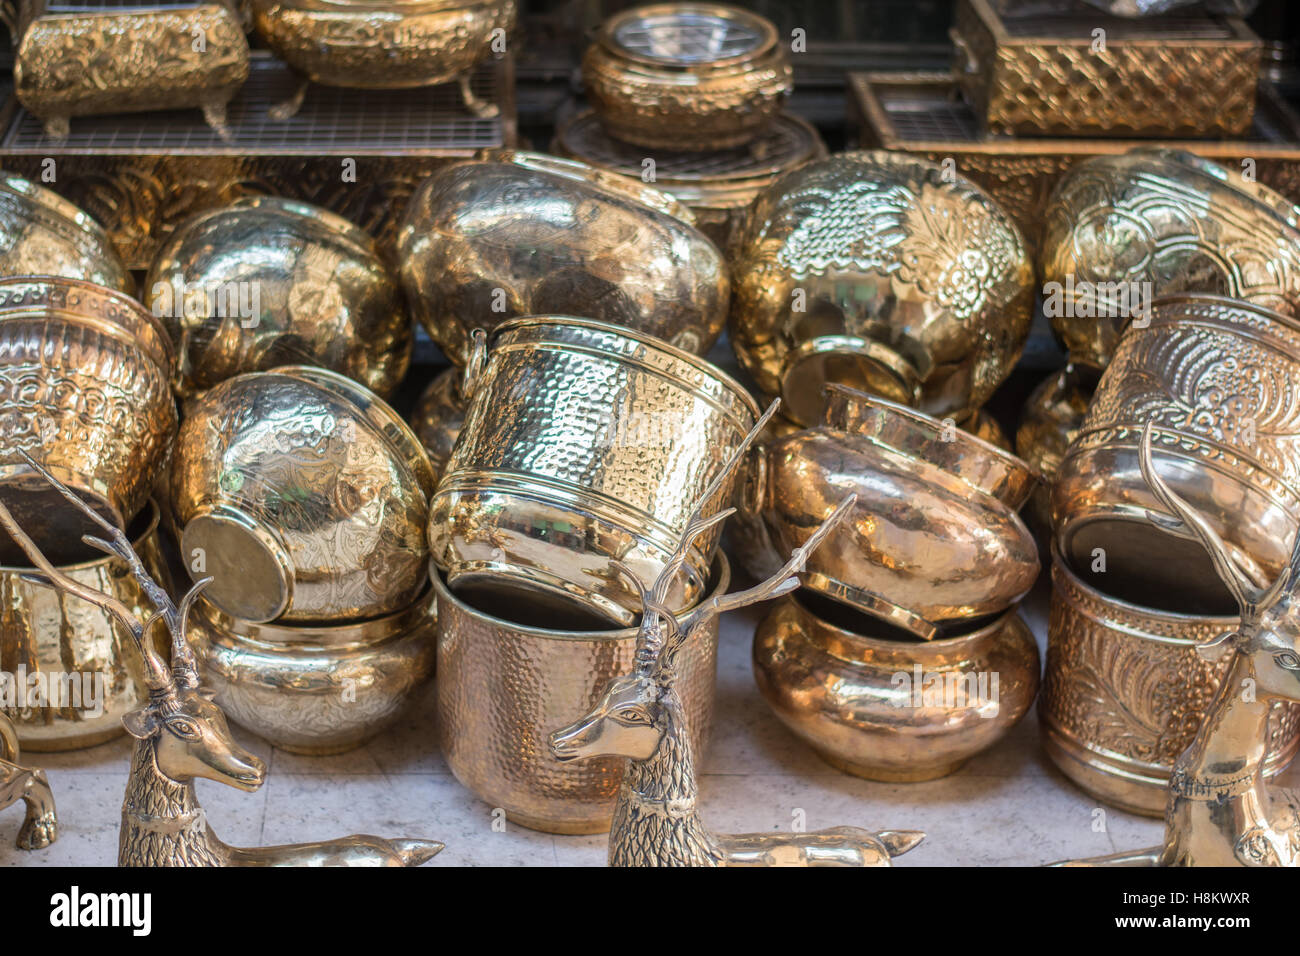 Cairo egypt ornate gold pots and vases for sale in the outdoor ornate gold pots and vases for sale in the outdoor bazaar flea market khan el khalili in cairo reviewsmspy